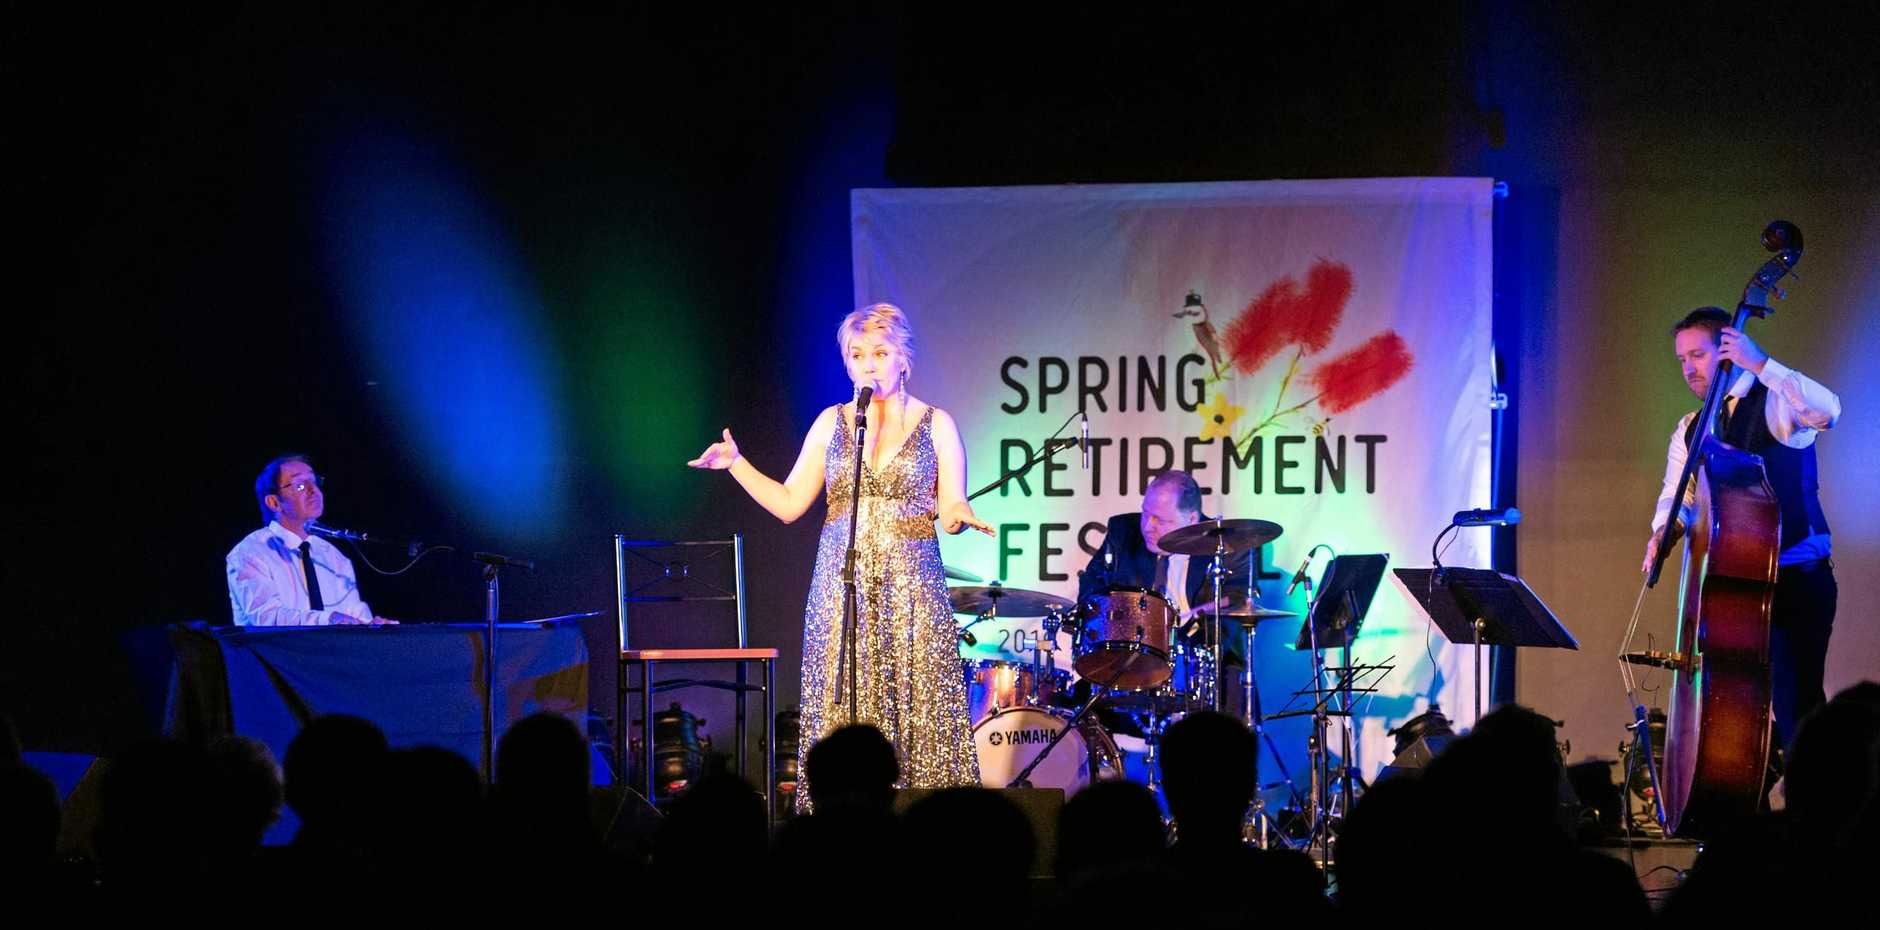 Melinda Schneider performs at a previous Lendlease Spring Retirement Festival.